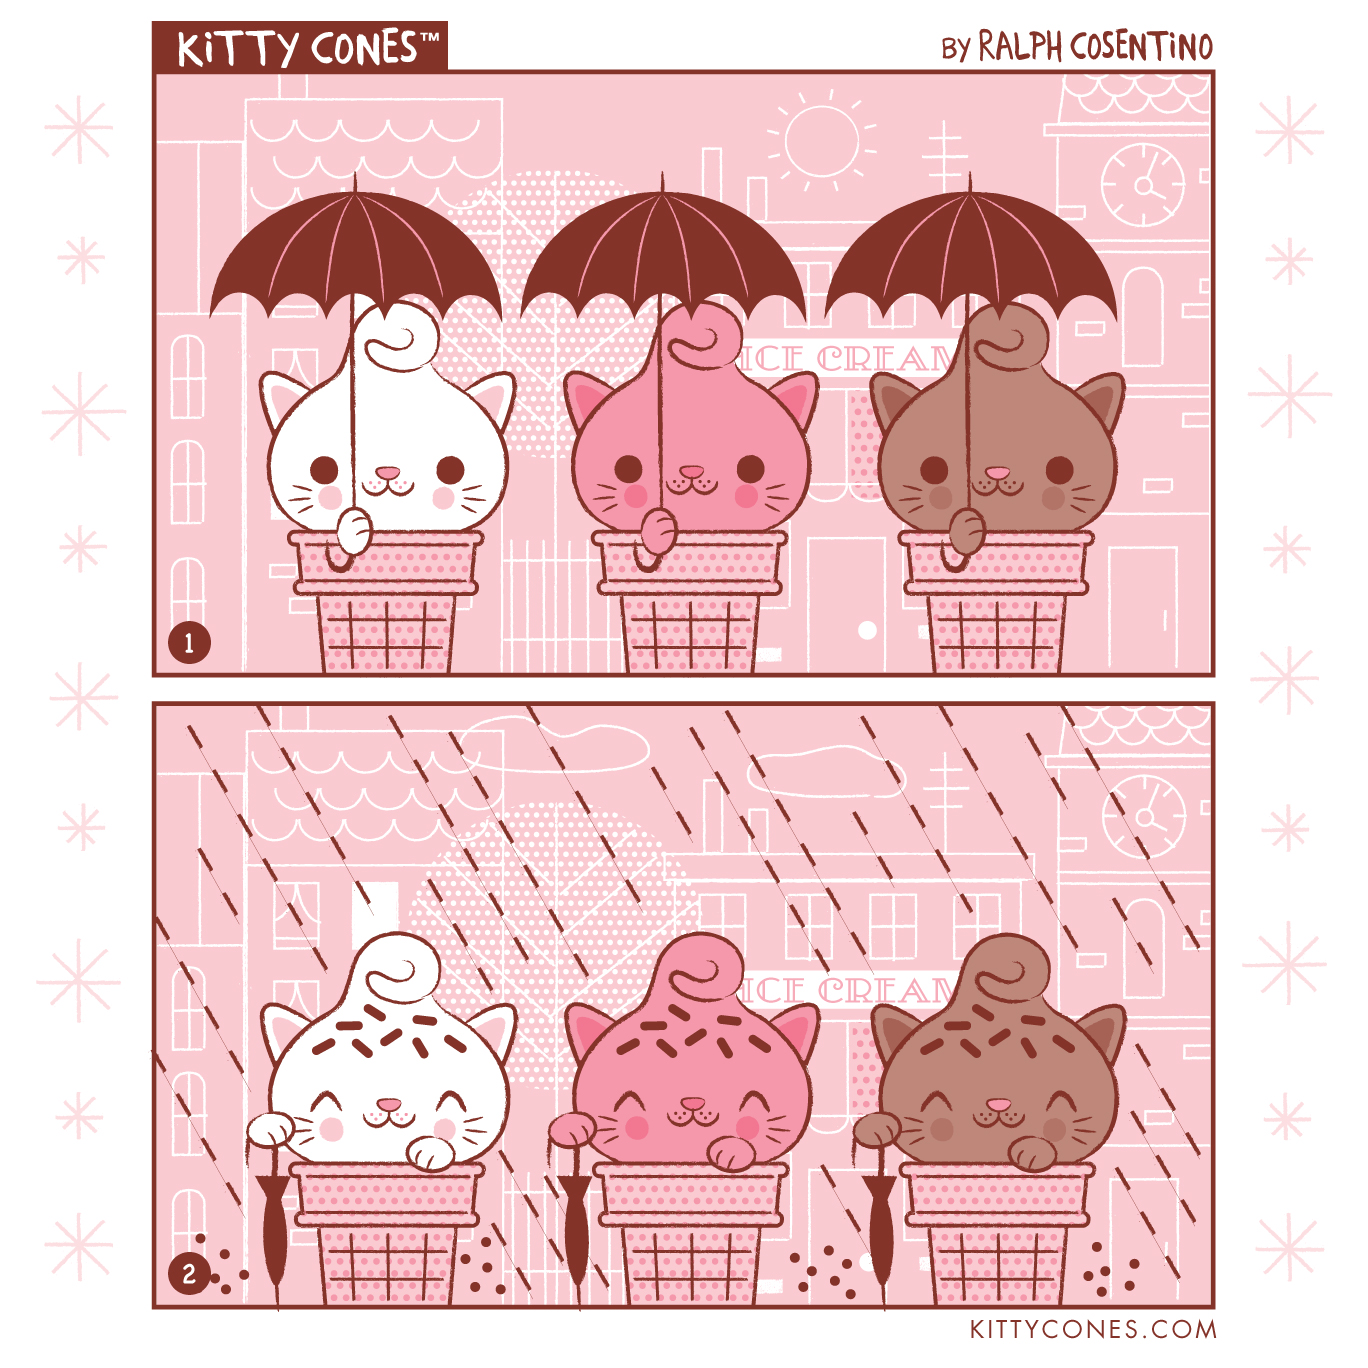 Kitty Cones Comic Strip # 8